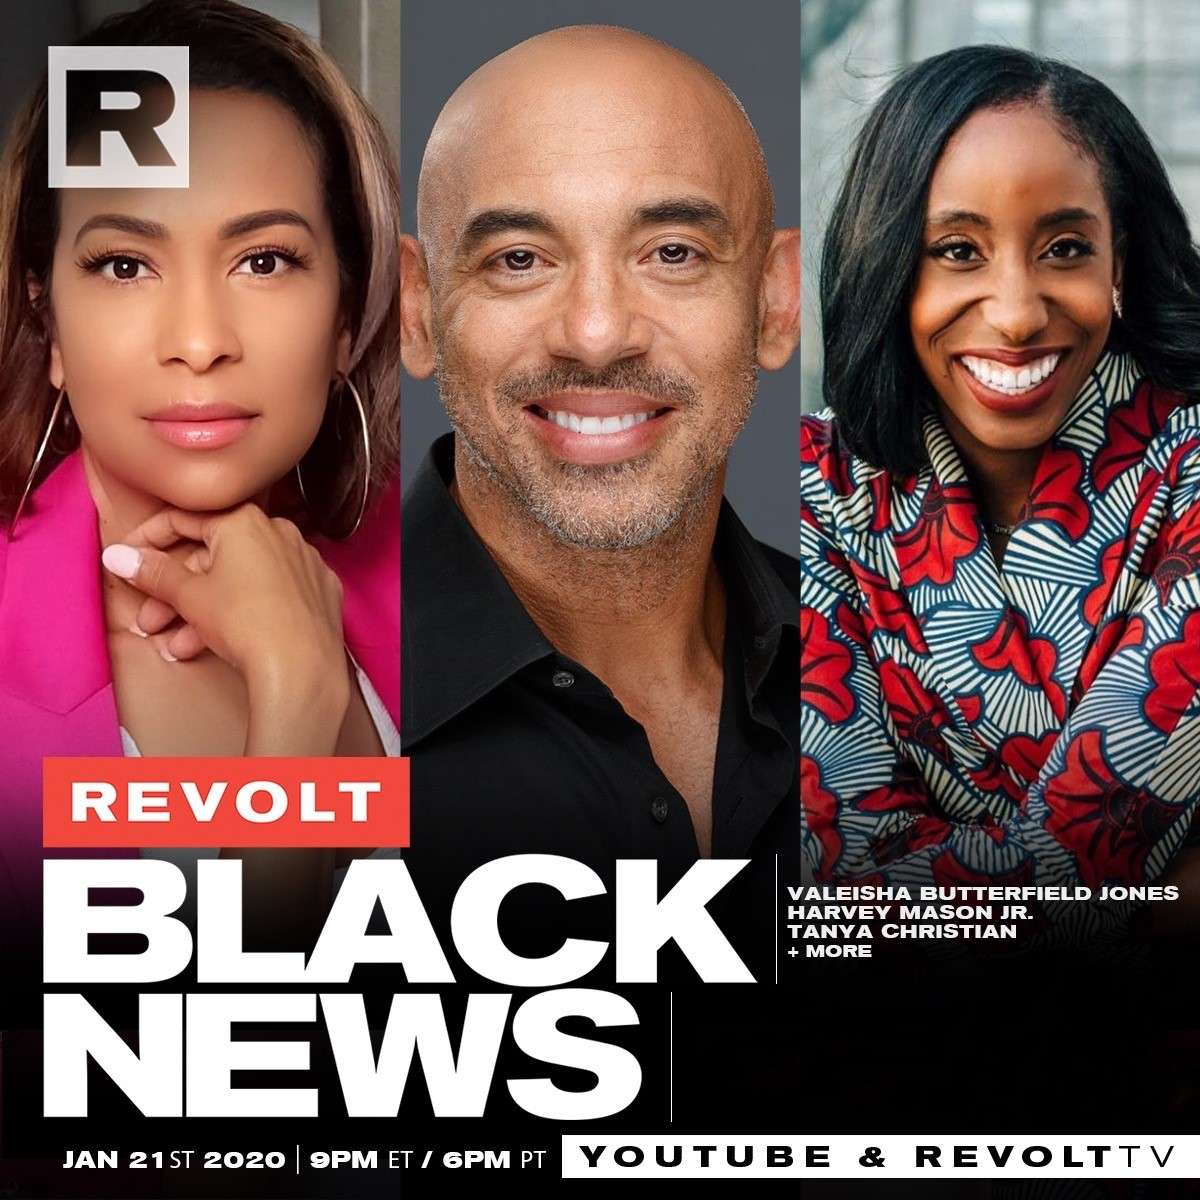 TONIGHT!  Tune into @RevoltTV at 6pm PT to see a discussion with our very own @Valeisha and @HarveyMasonjr, plus  @TanyaAChristian about Black representation/strides being made at the #RecordingAcademy to instill change!   📺 on REVOLT TV or REVOLT TV's YouTube. #REVOLTBLACKNEWS